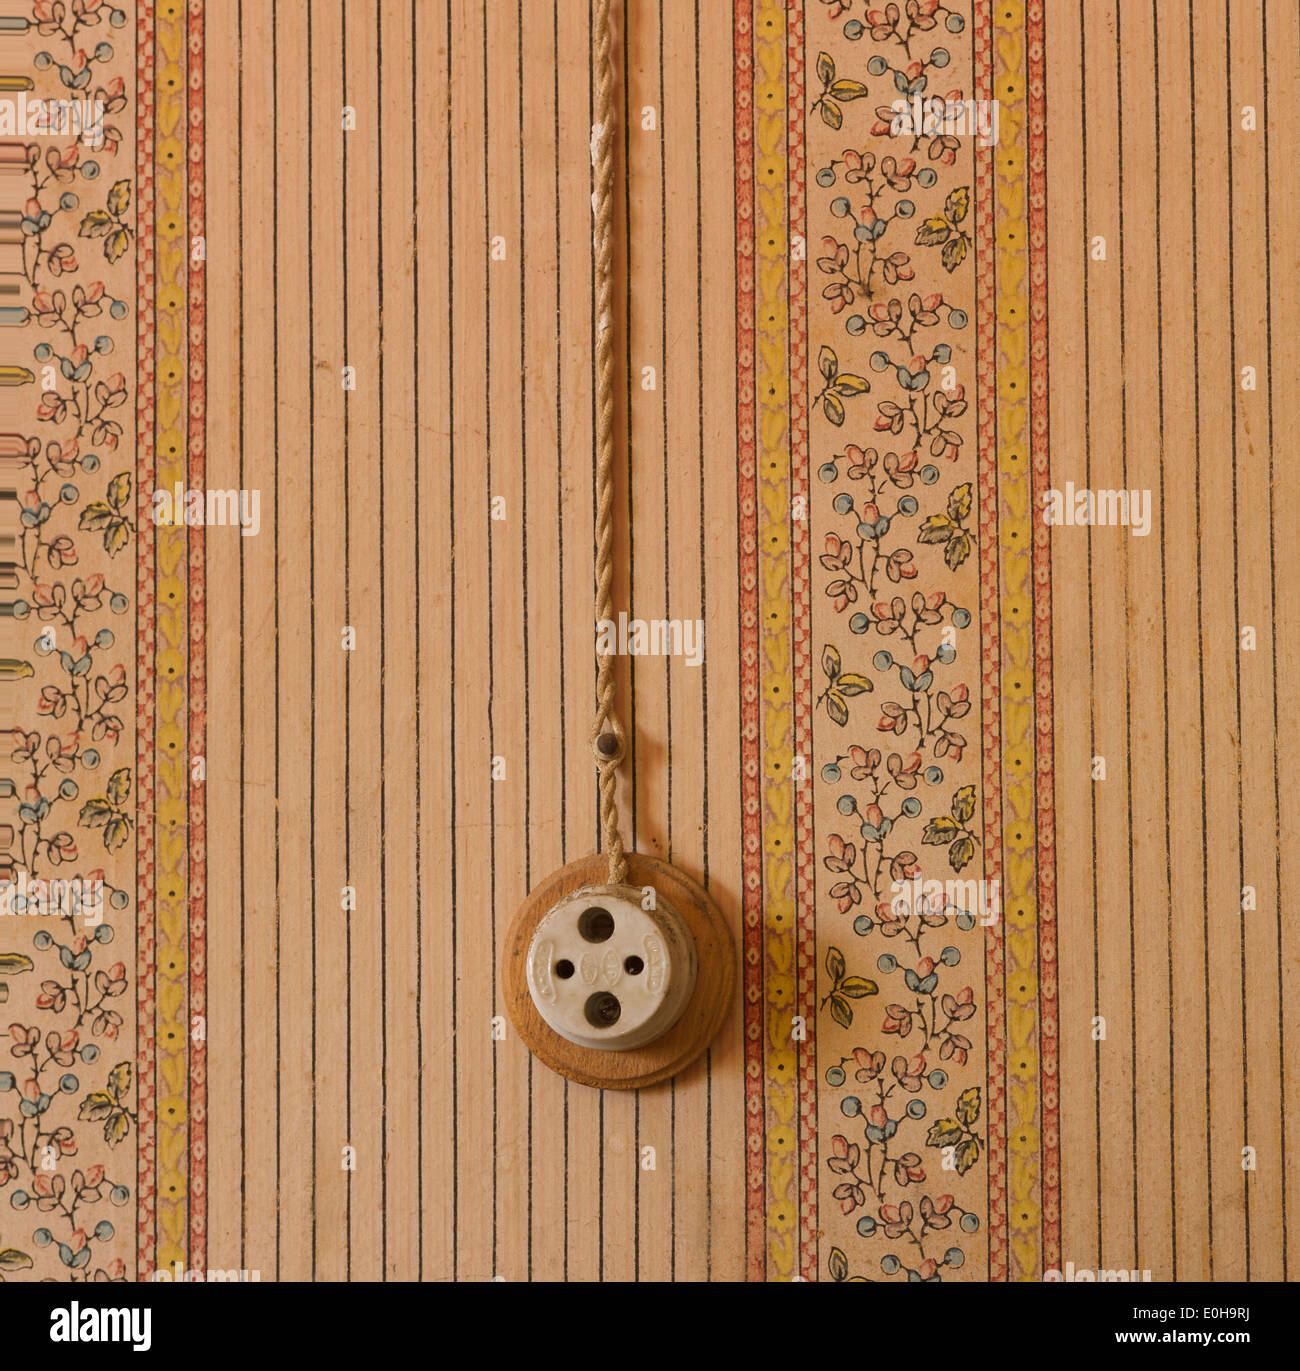 Old House Electrical Wiring Stock Photos & Old House ... on